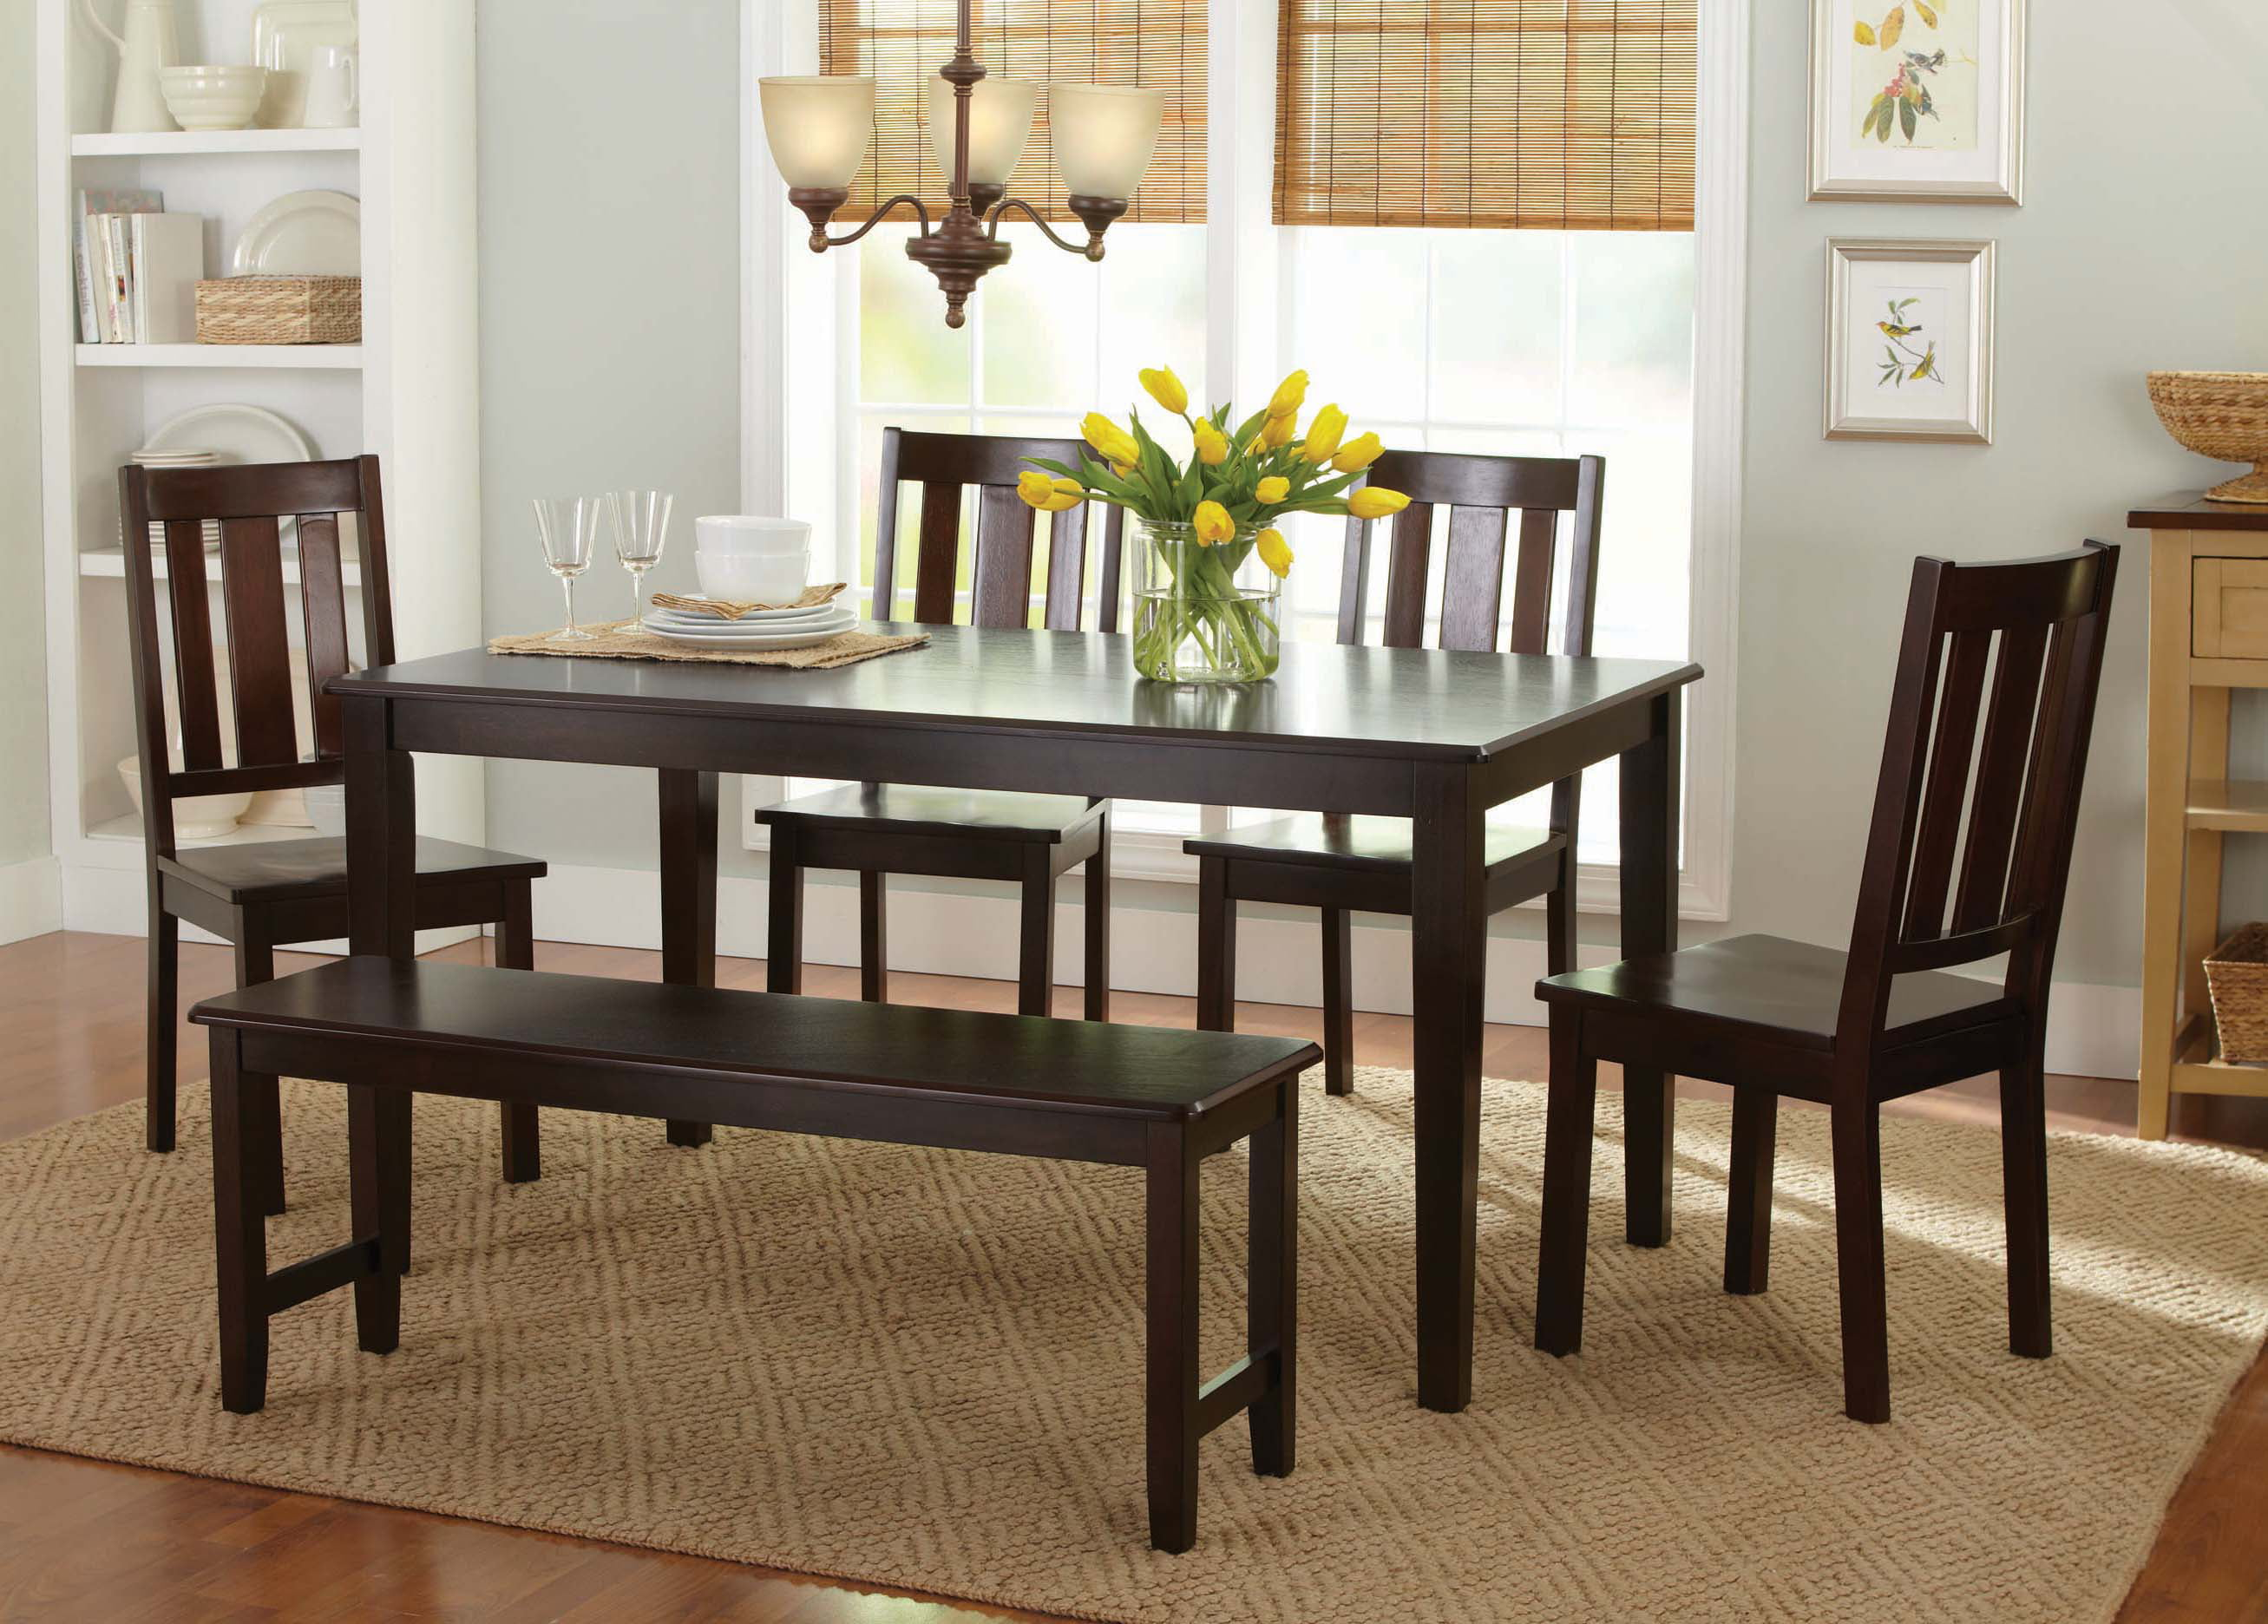 Dining Table In Kitchen Better Homes And Gardens Bankston Dining Table Mocha Walmartcom